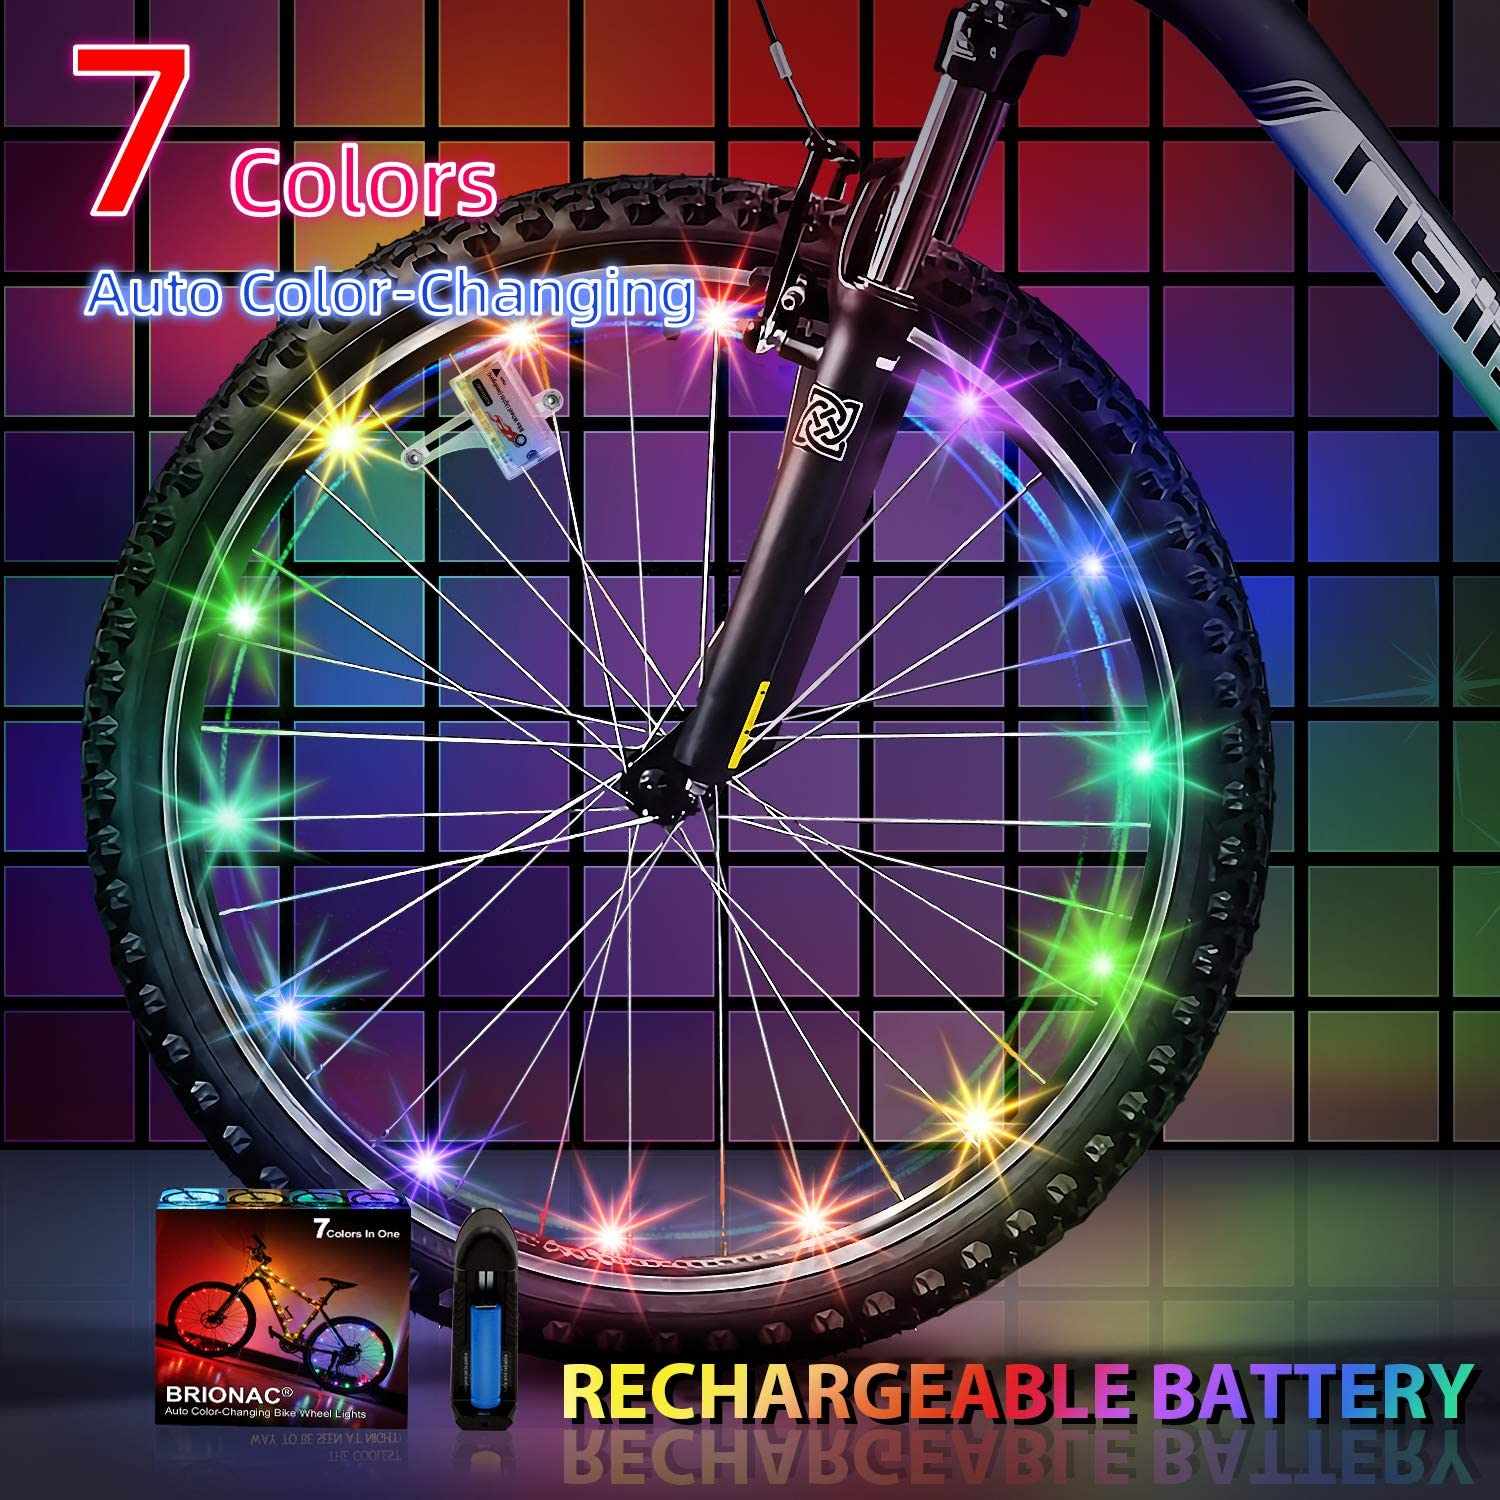 Bodyguard Bike Wheel Lights Waterproof Auto Open and Close Ultra Bright 20 LED Bicycle Spoke Light 1 pack Bicycle Tire Accessories